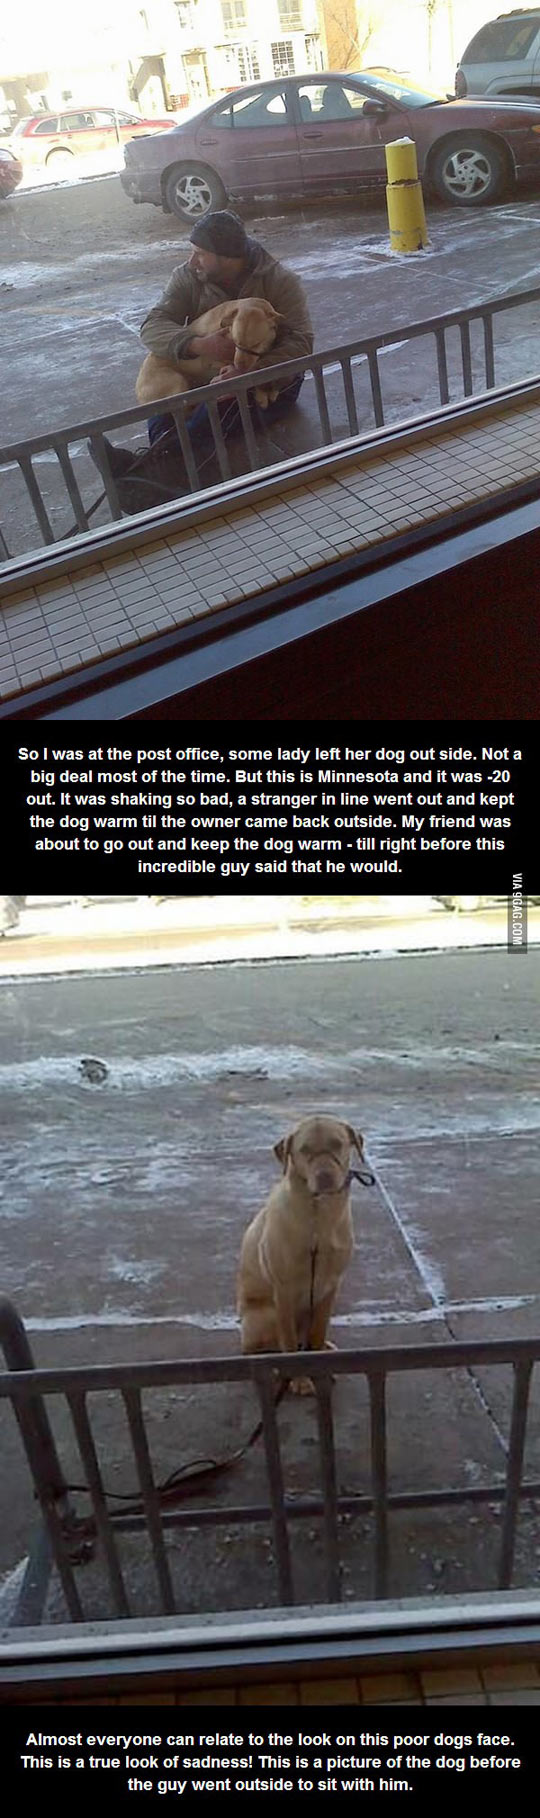 Dogs get cold too…